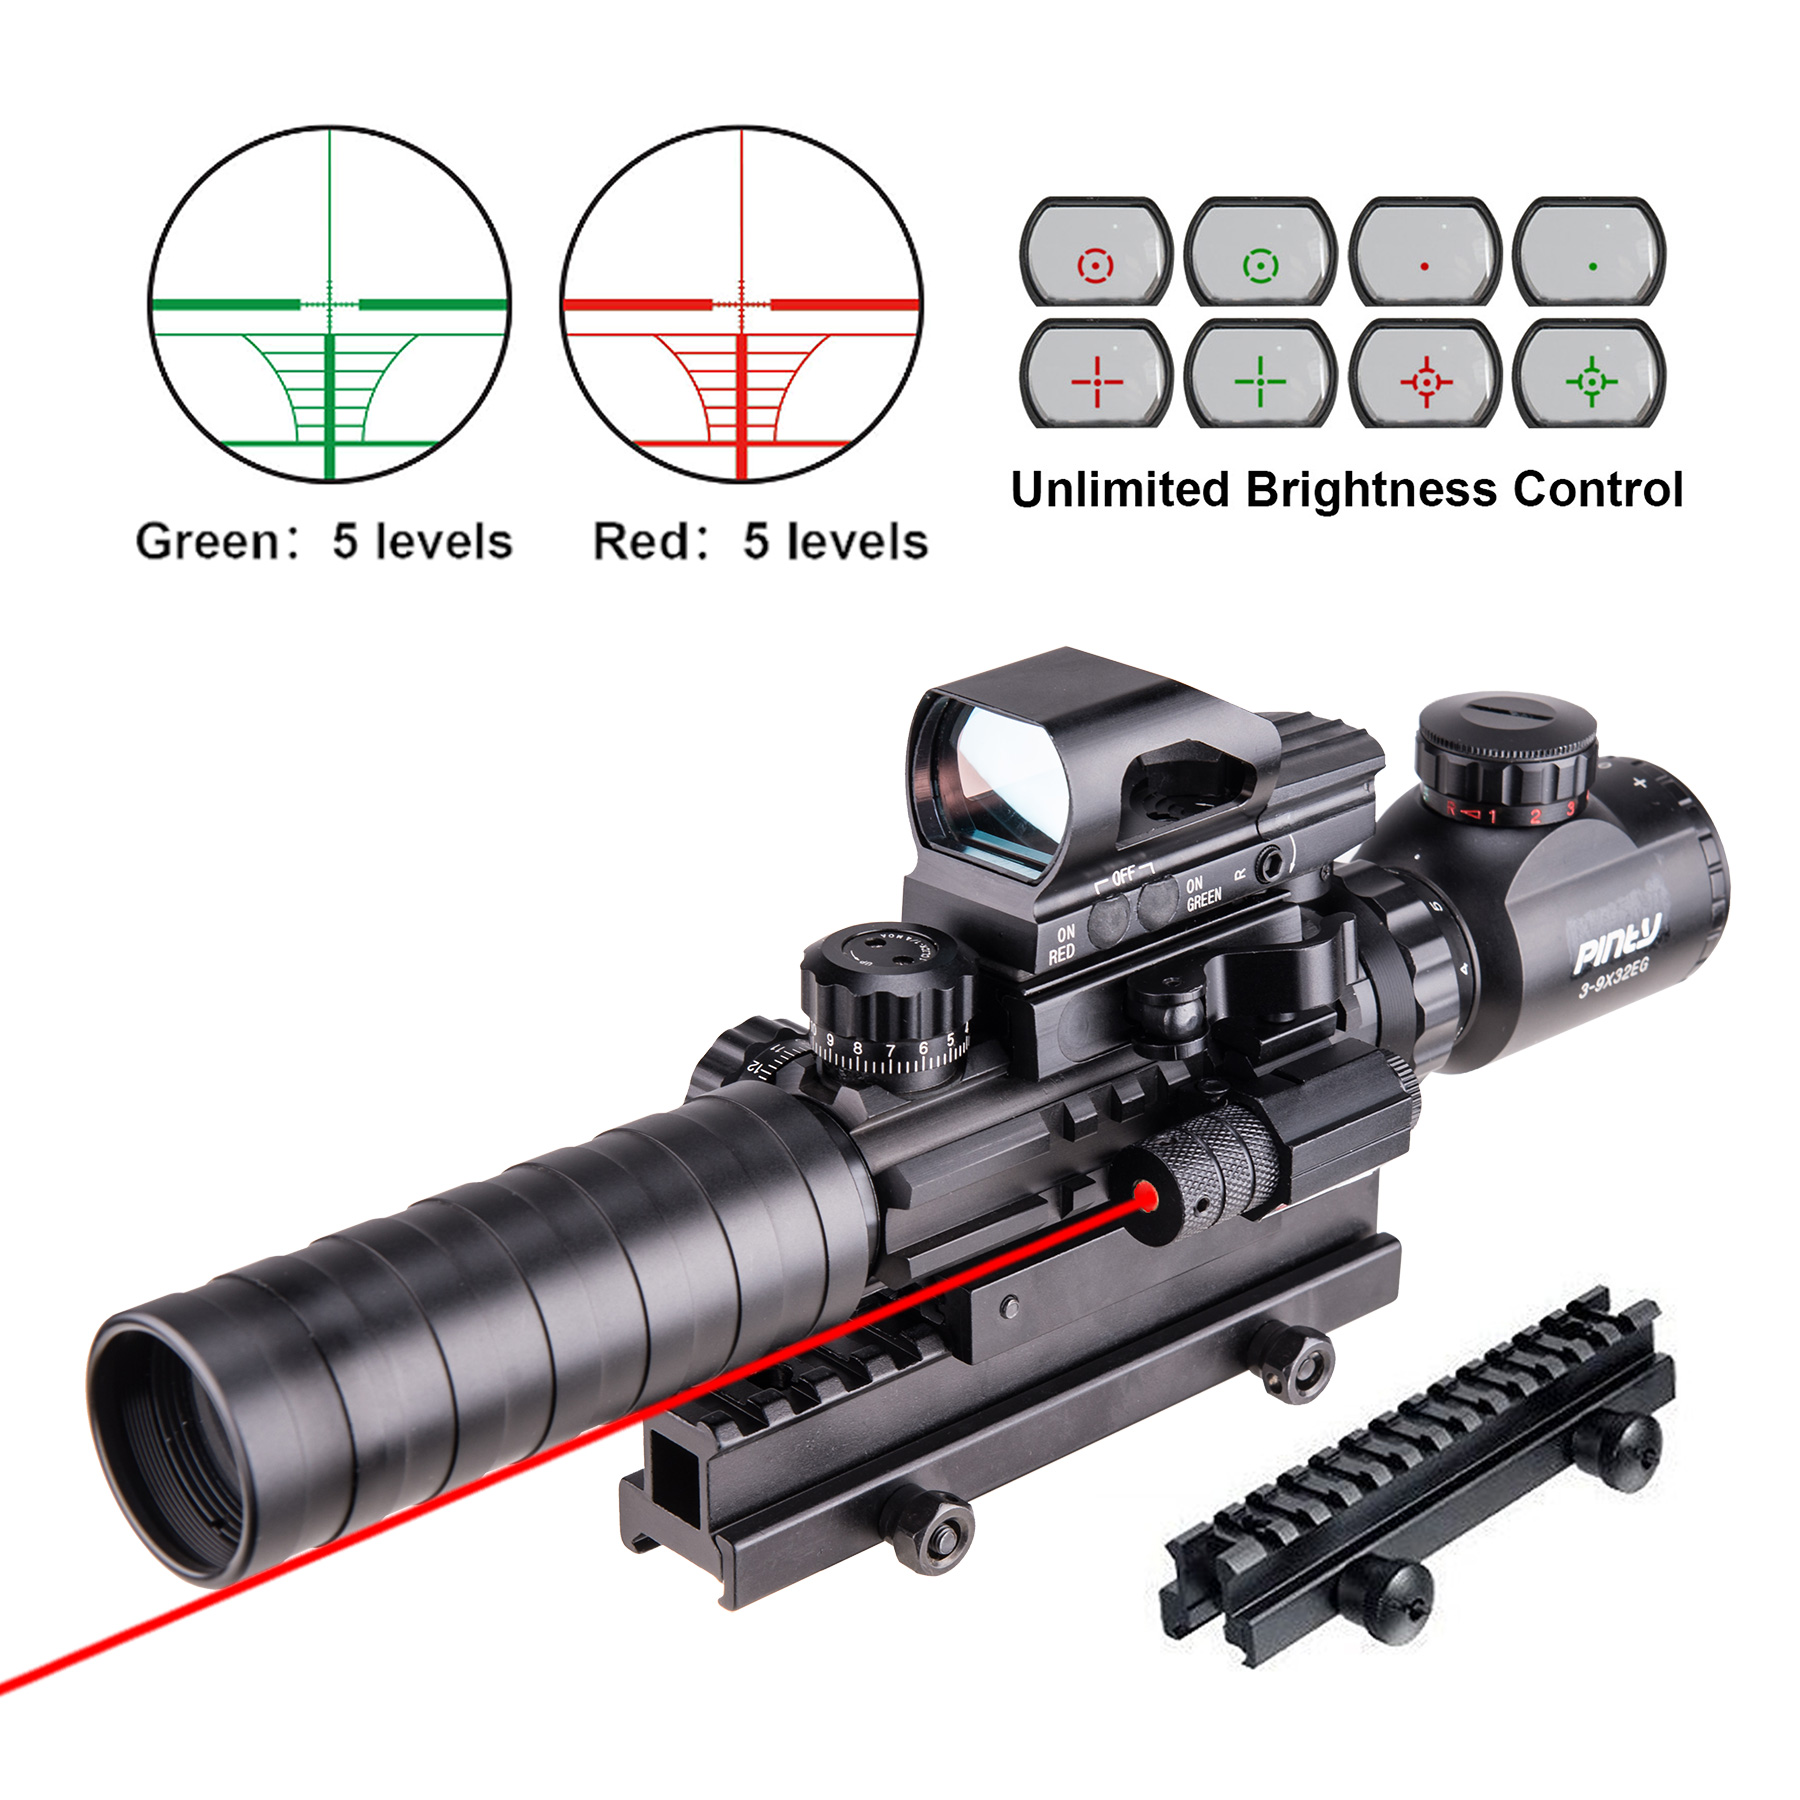 4-in-1 3-9x32EG Tactical Optical Reticle Riflescope Dual Illuminated with Green Laser Sight and Red Green Dot Sight by